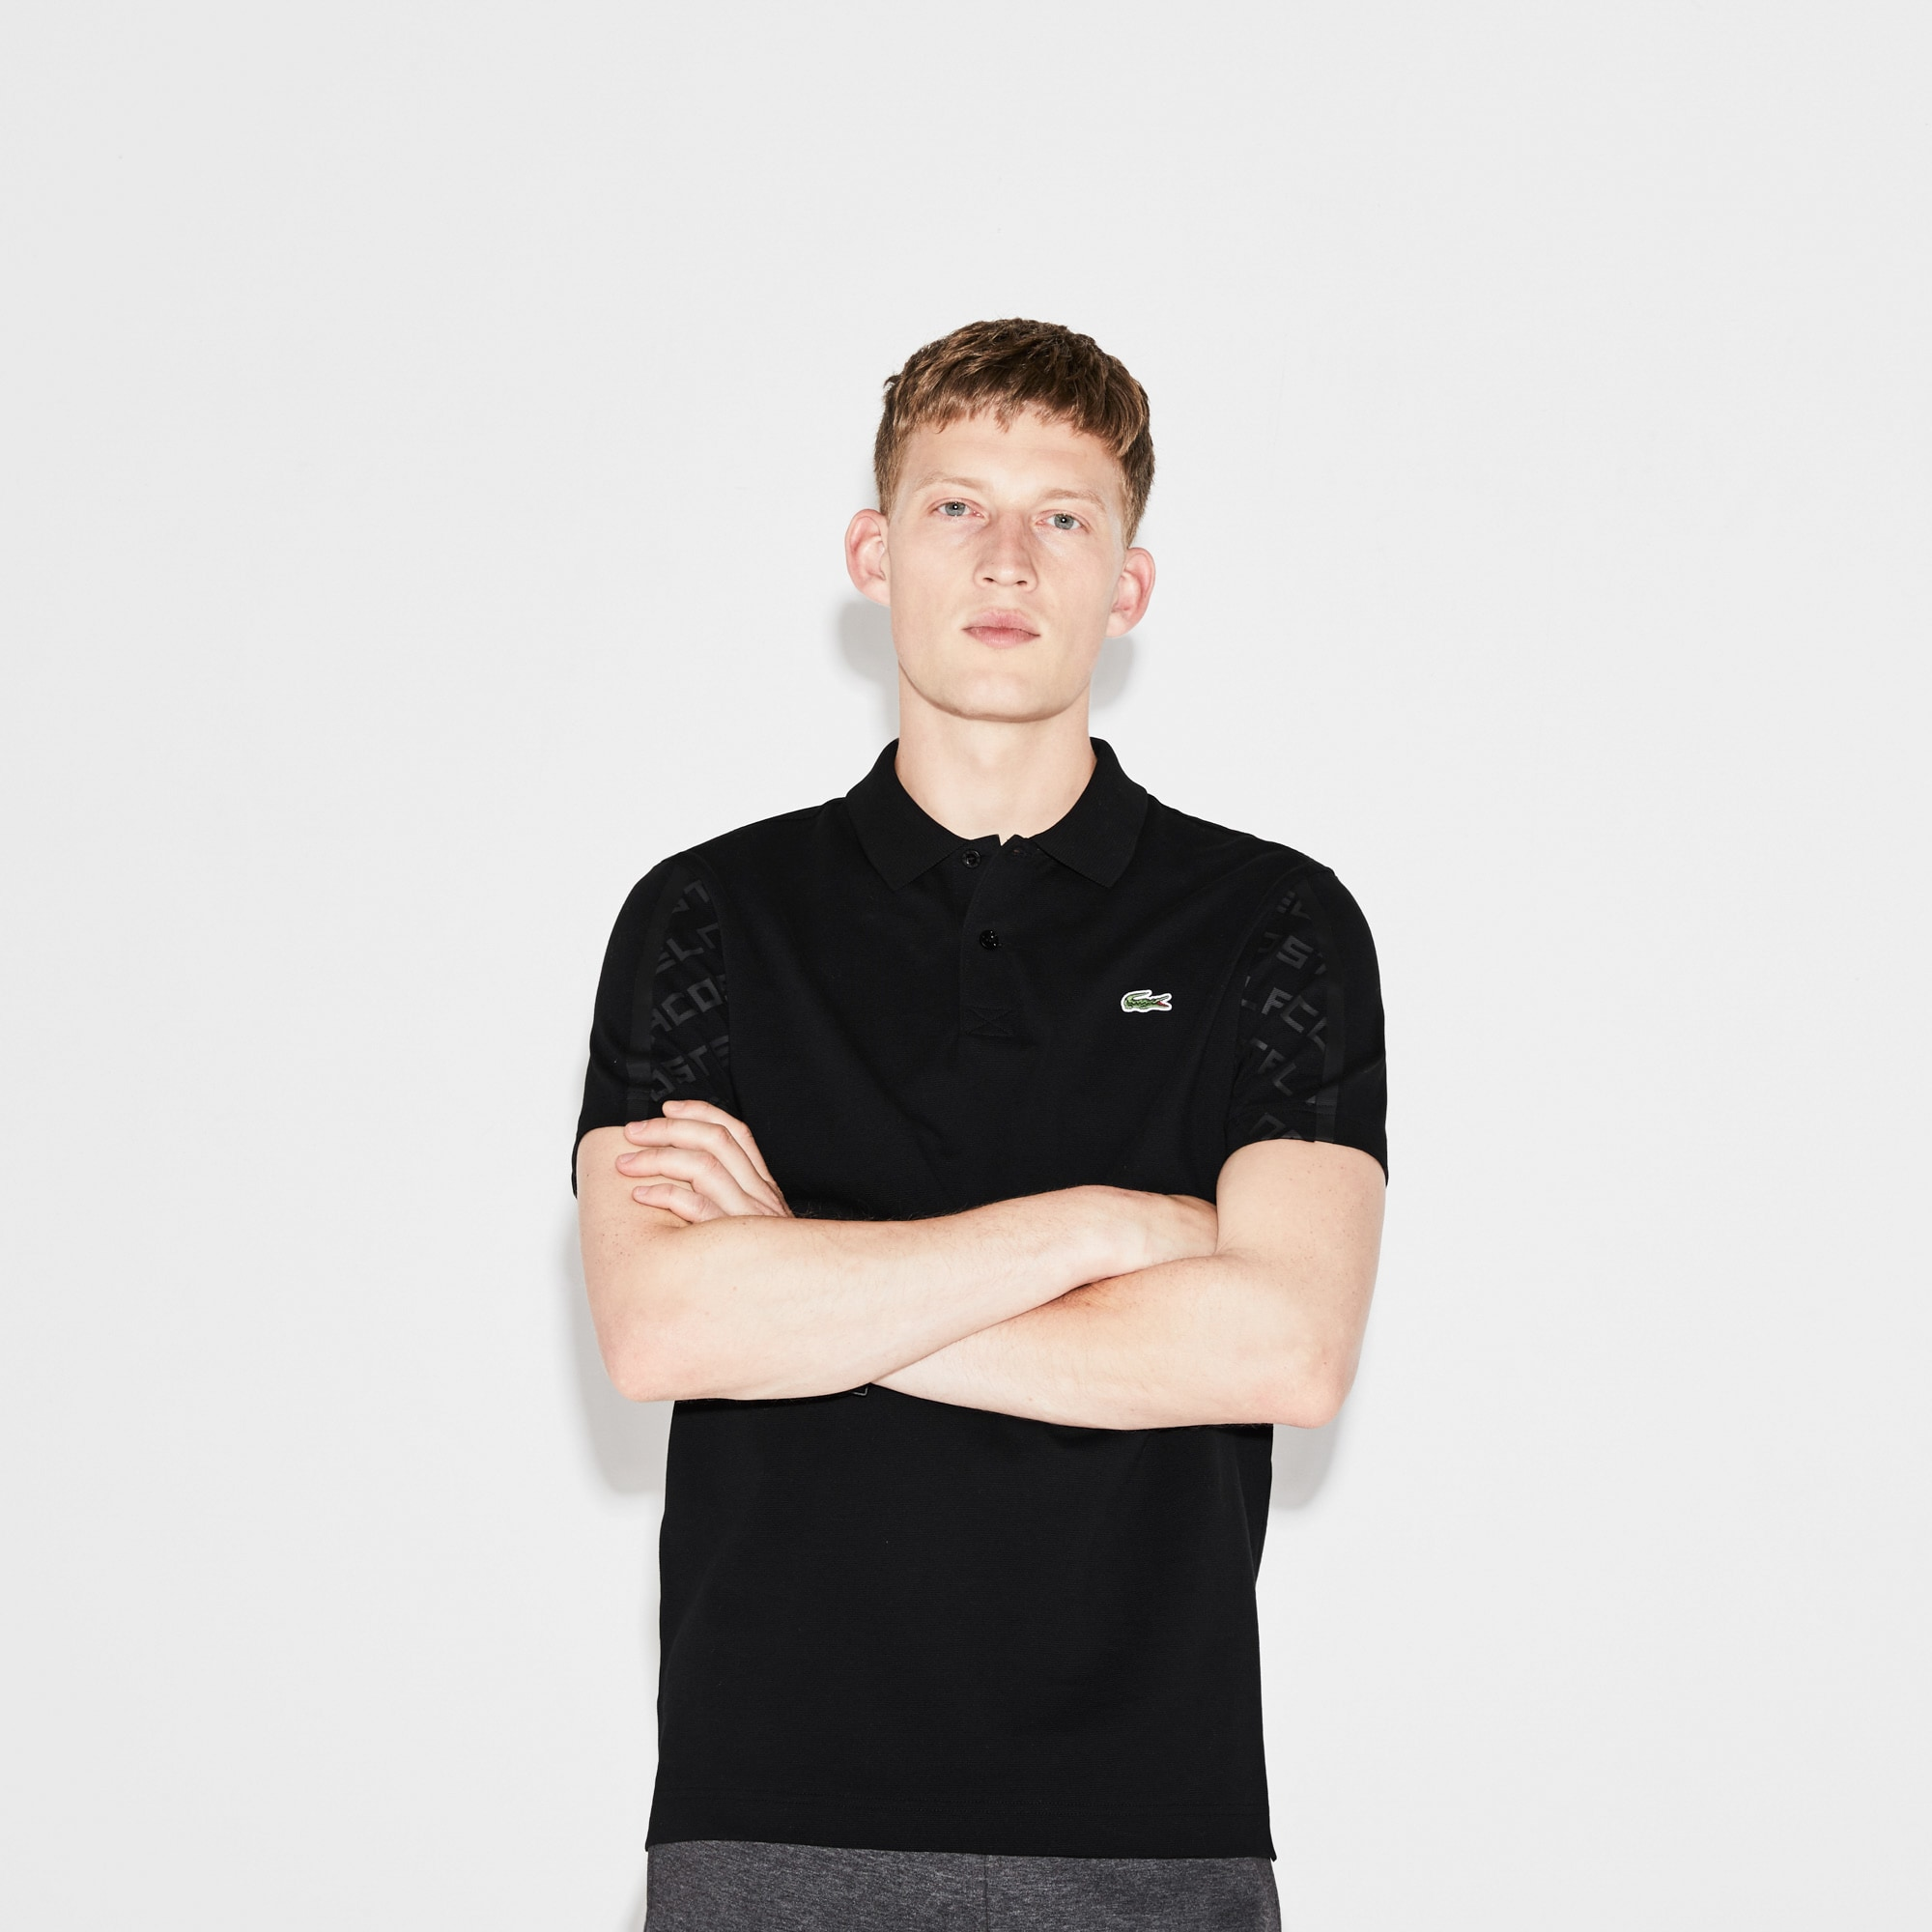 Men's Lacoste SPORT Tennis Print Sleeves Lightweight Knit Polo Shirt